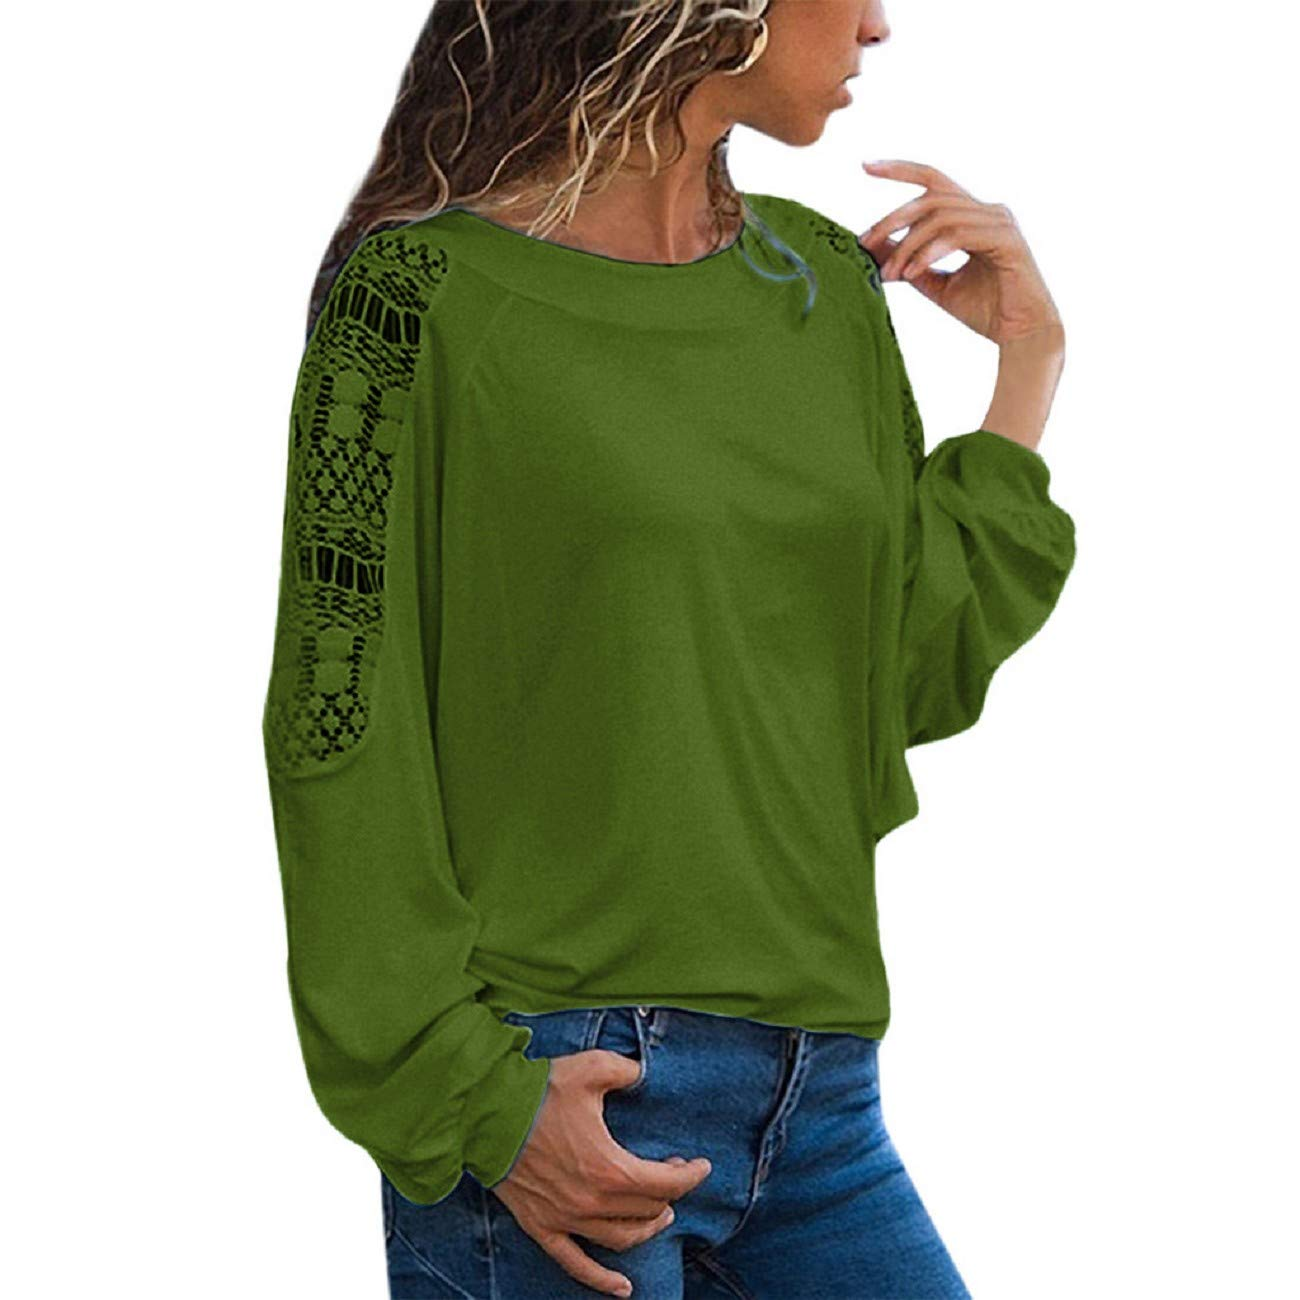 Reokoou Women Lace Patchwork Sweatshirt Plus Size Long Sleeve O-Neck Solid Hollow Out Loose Pullover Tops Blouse